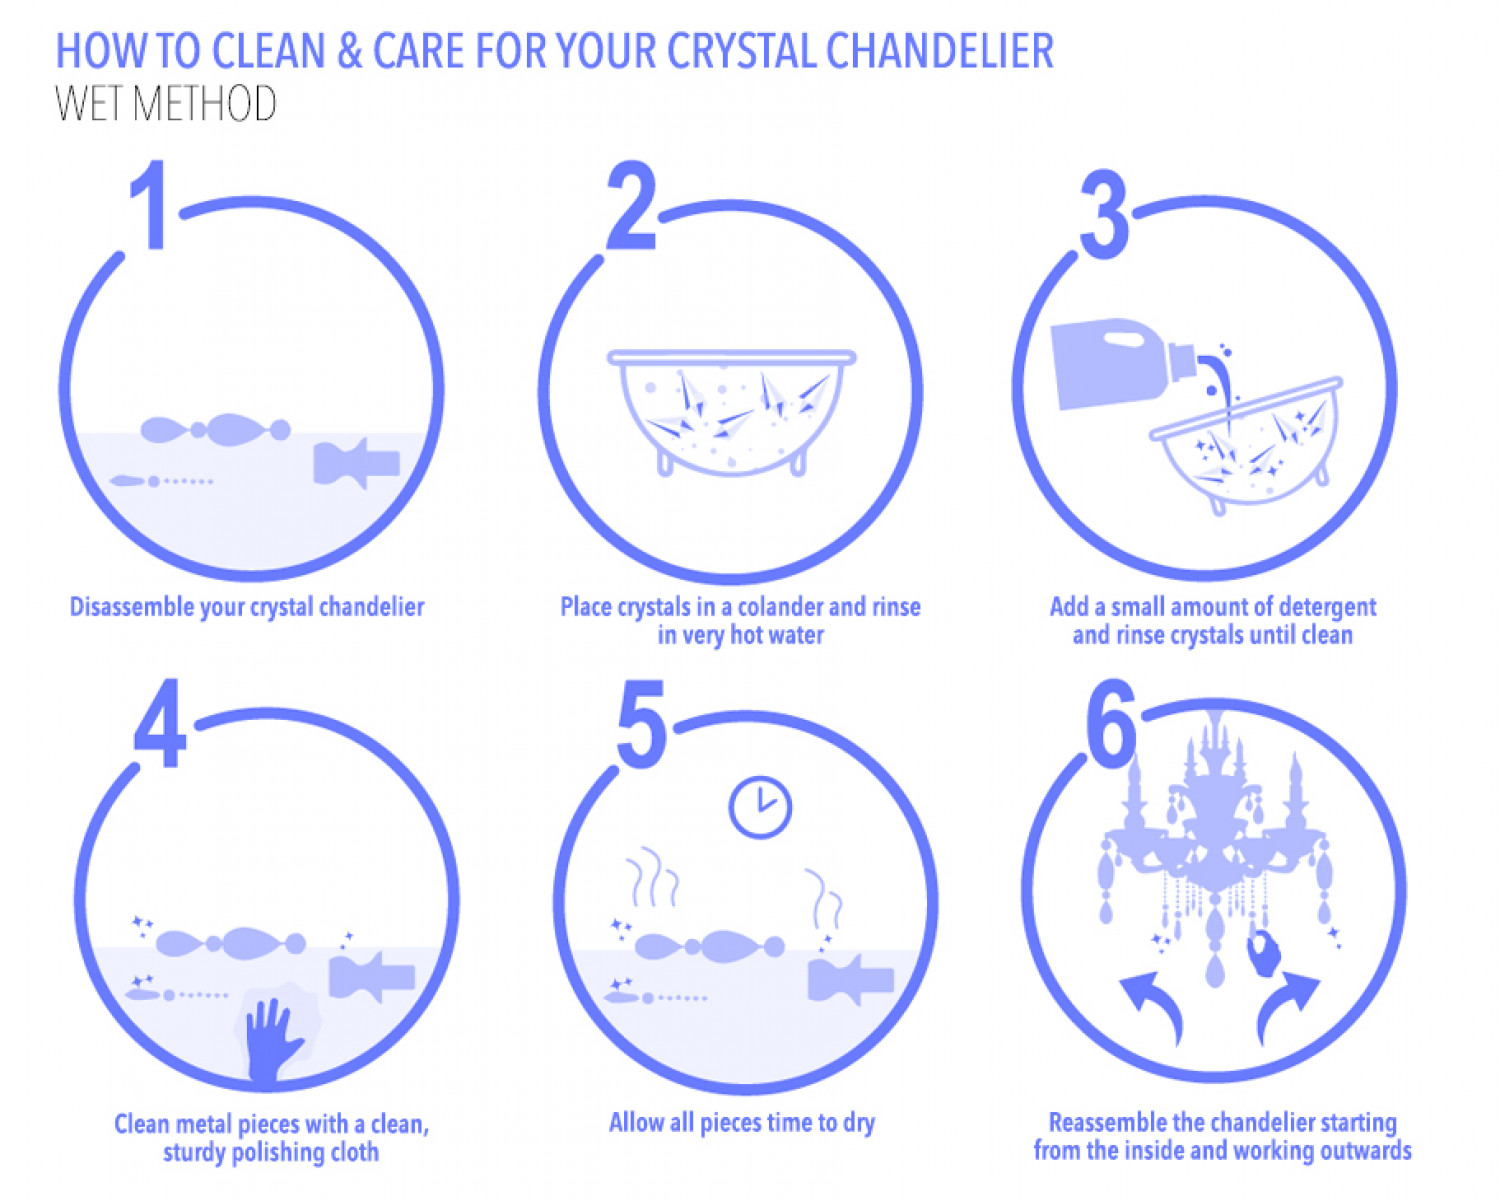 How to clean your crystal chandelier wet method visual how to clean your crystal chandelier wet method infographic aloadofball Images